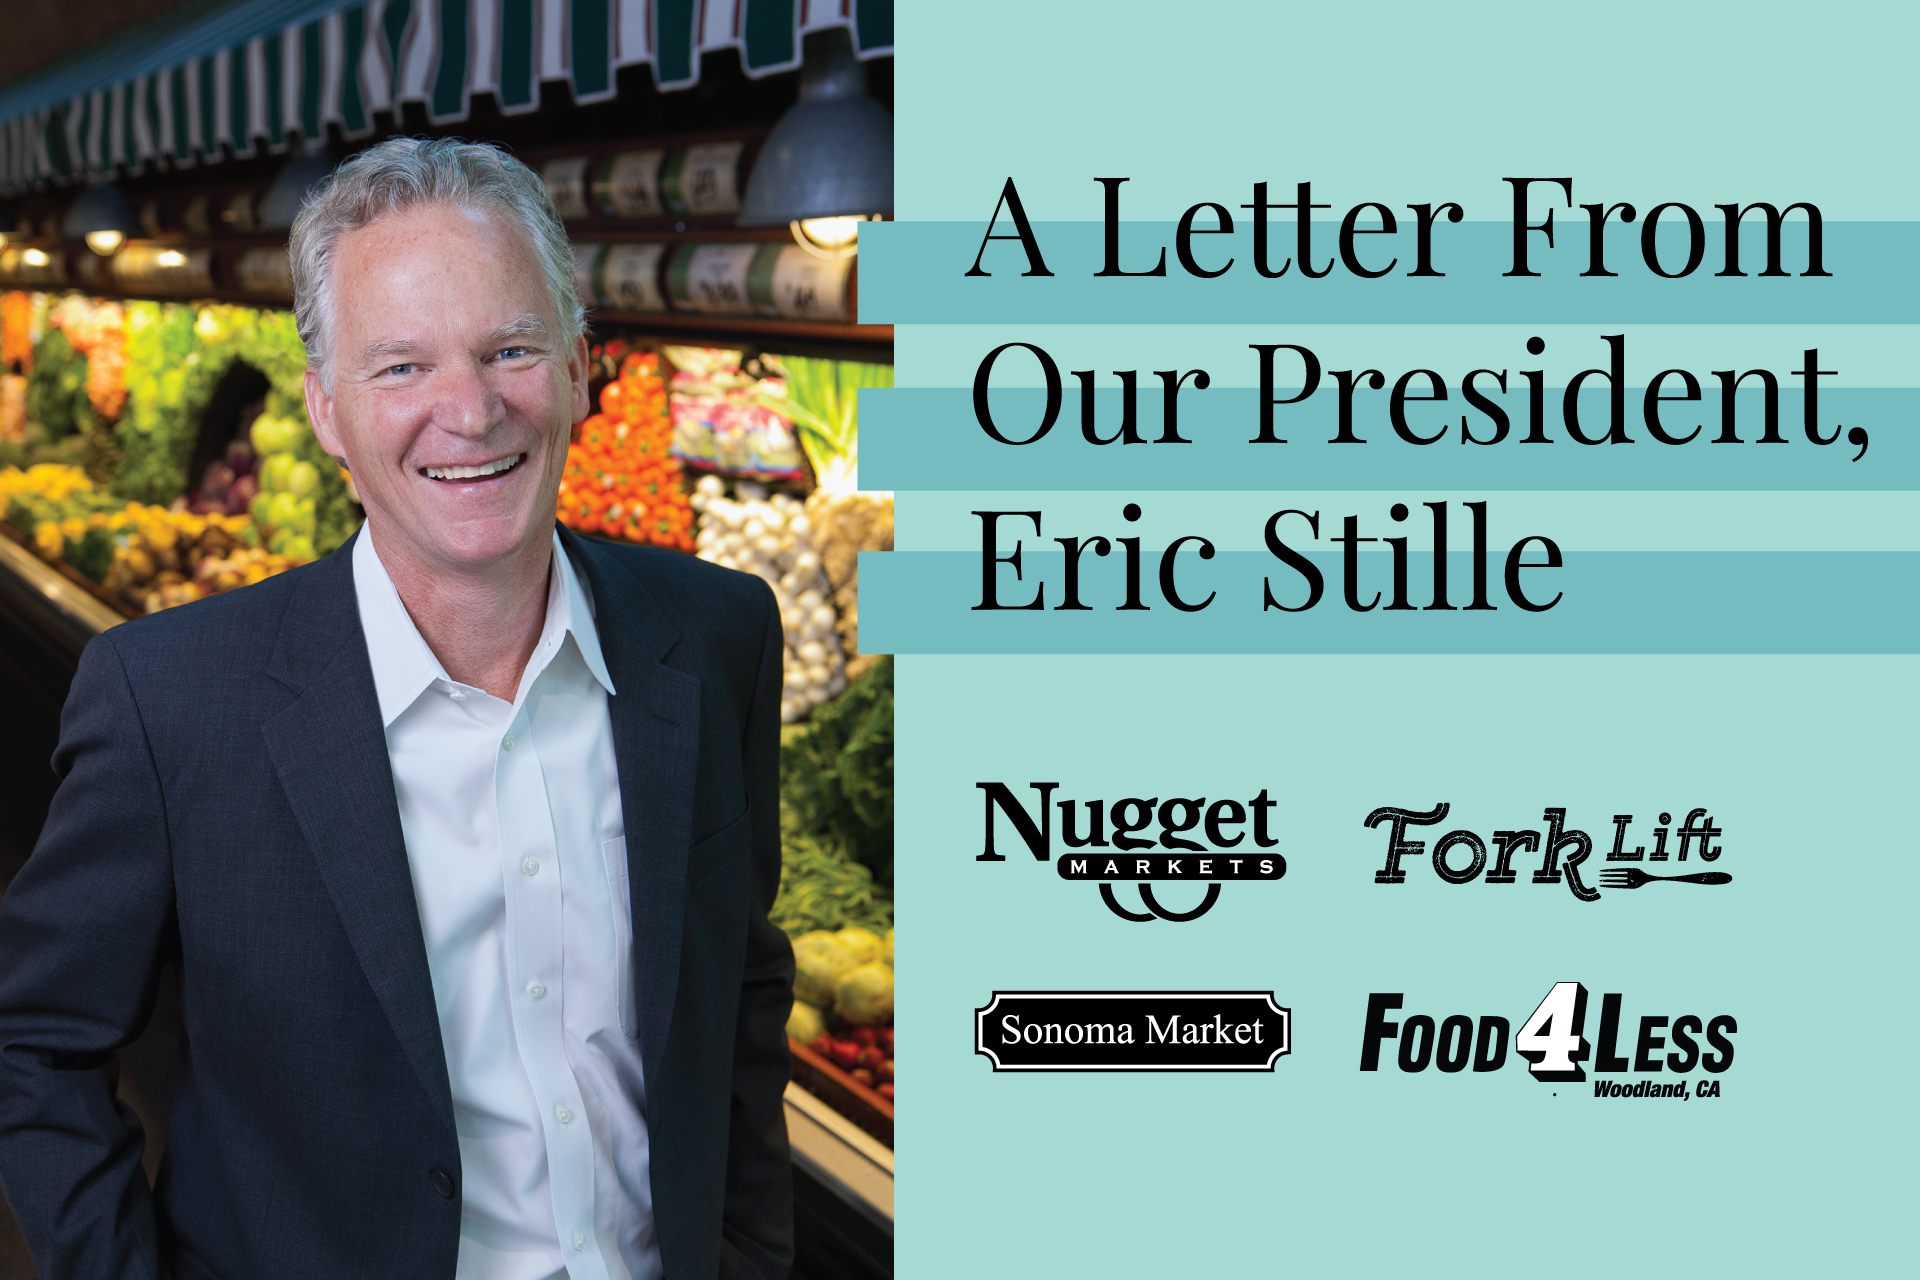 a letter from our president text with picture of Eric Stille and logos